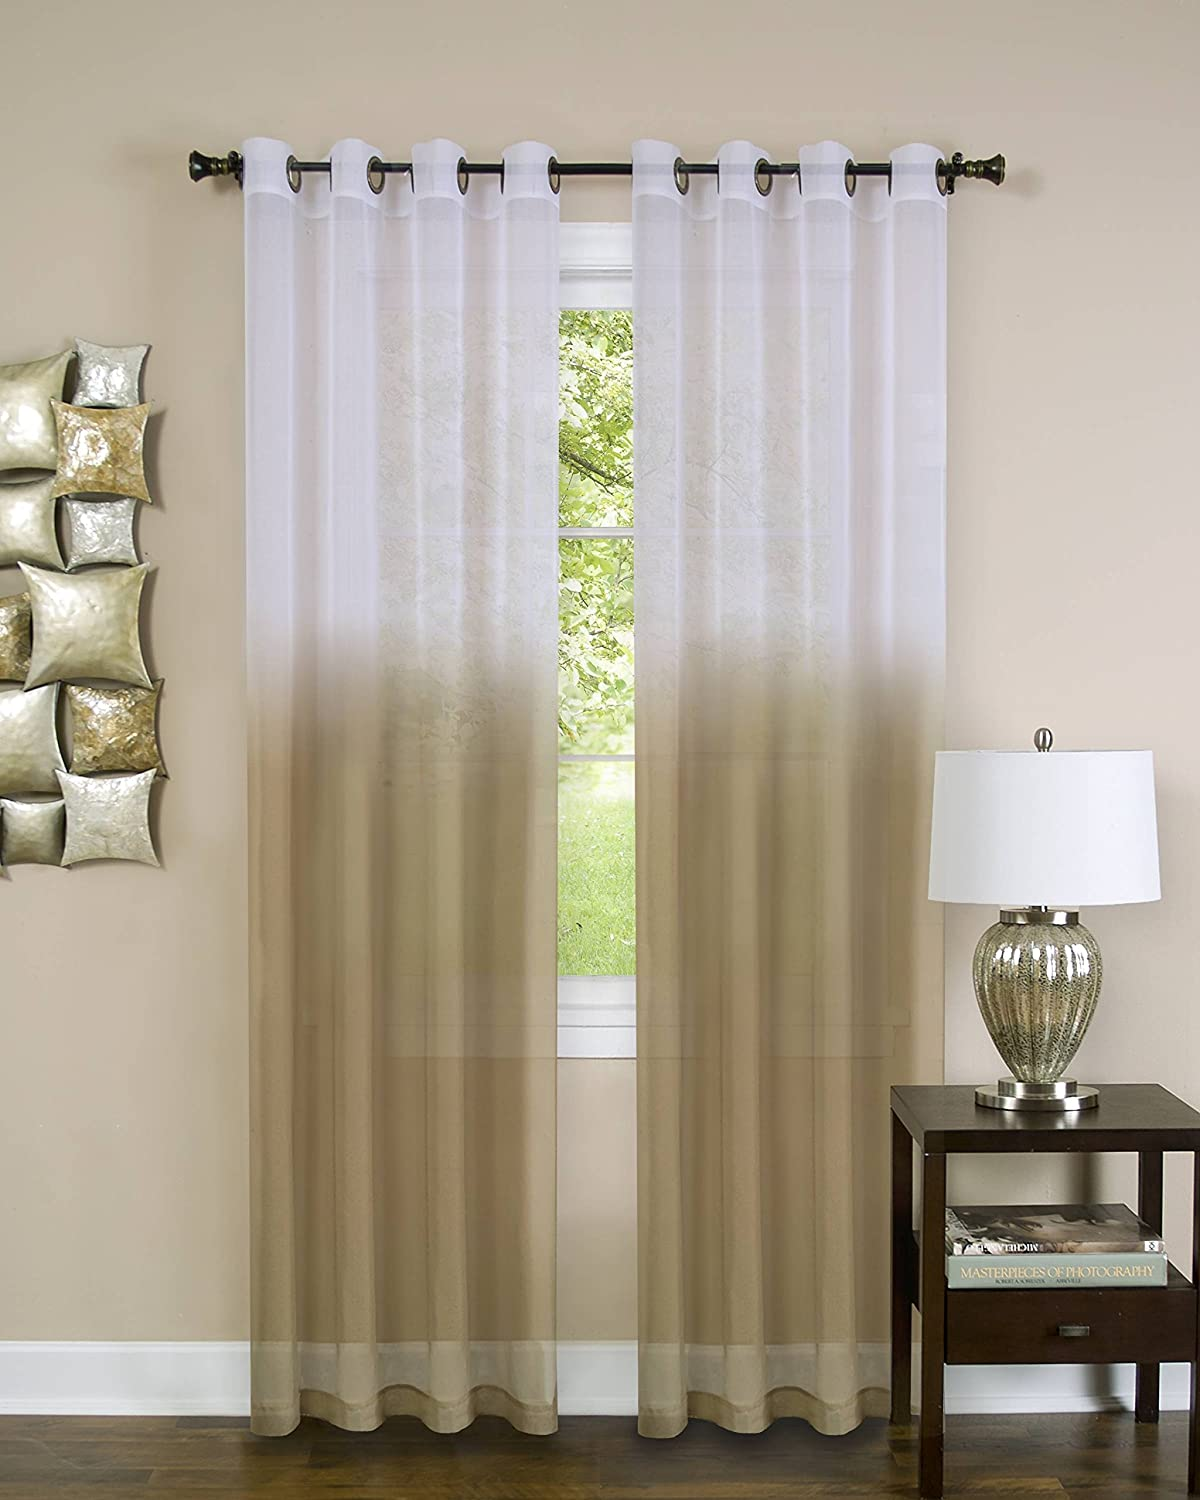 Amazon Essential Home Set Of 2 Ombre Sheer Window Curtain Panels 52 X 84